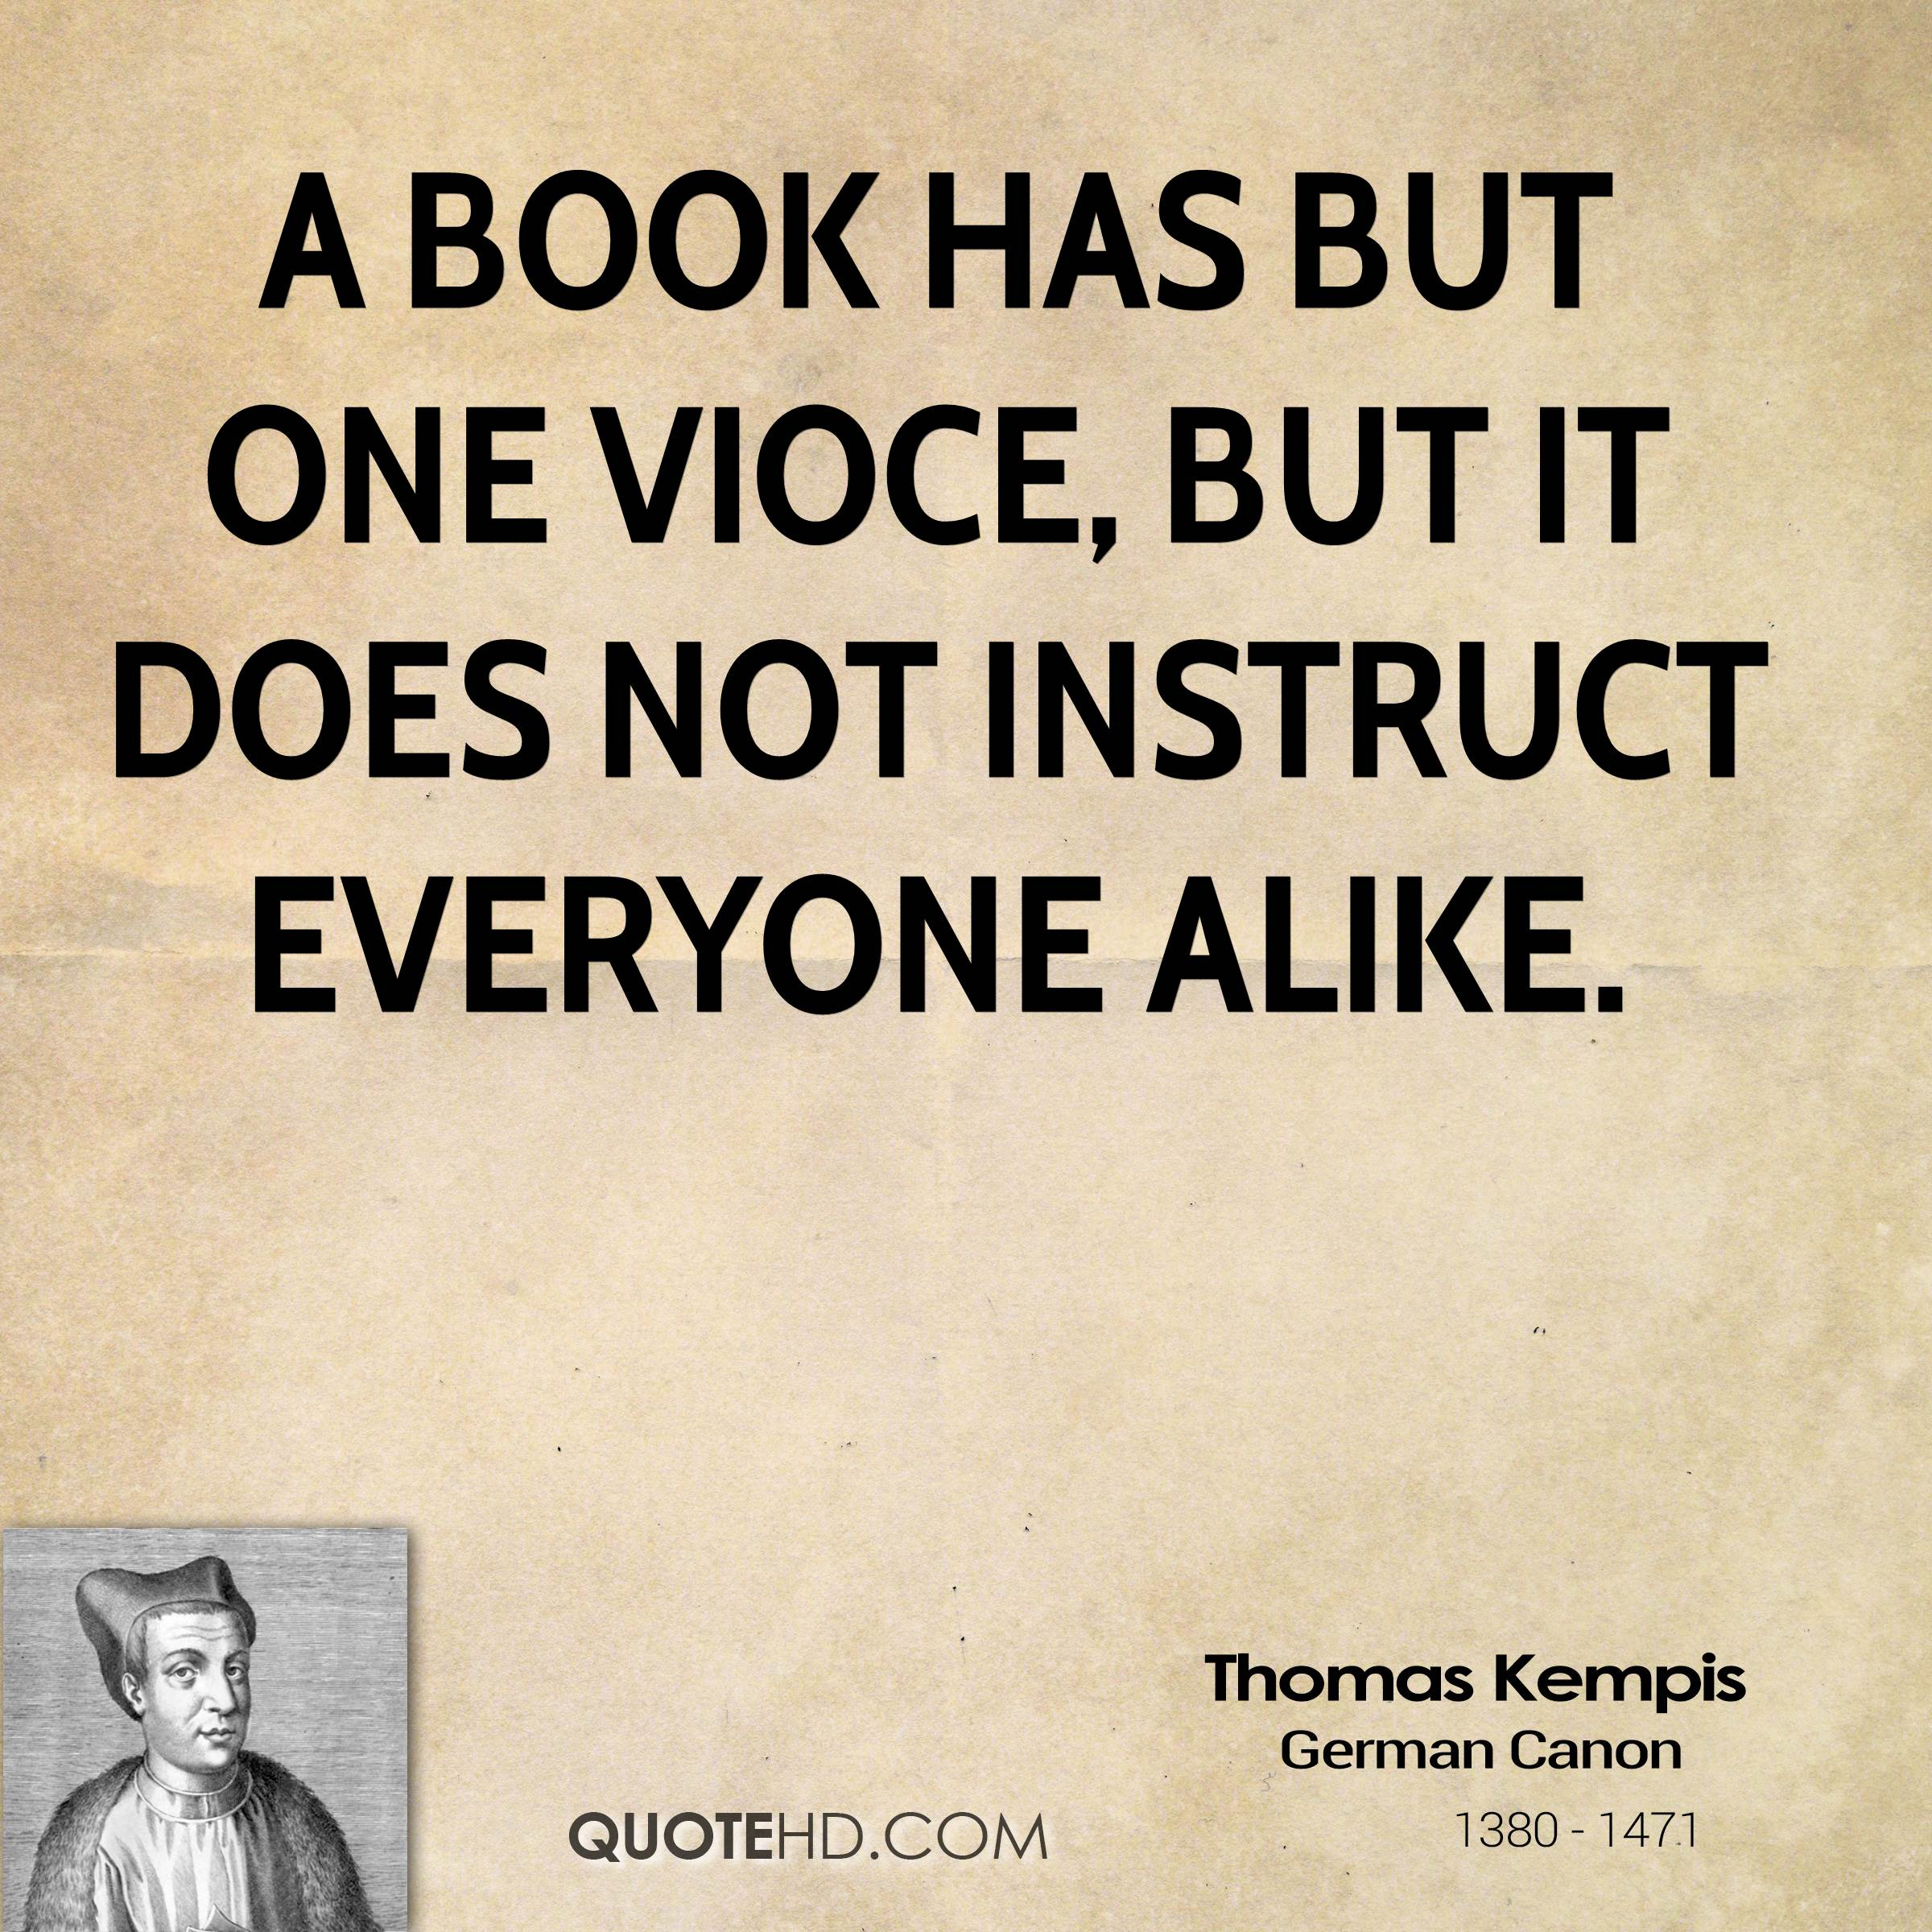 A book has but one vioce, but it does not instruct everyone alike.